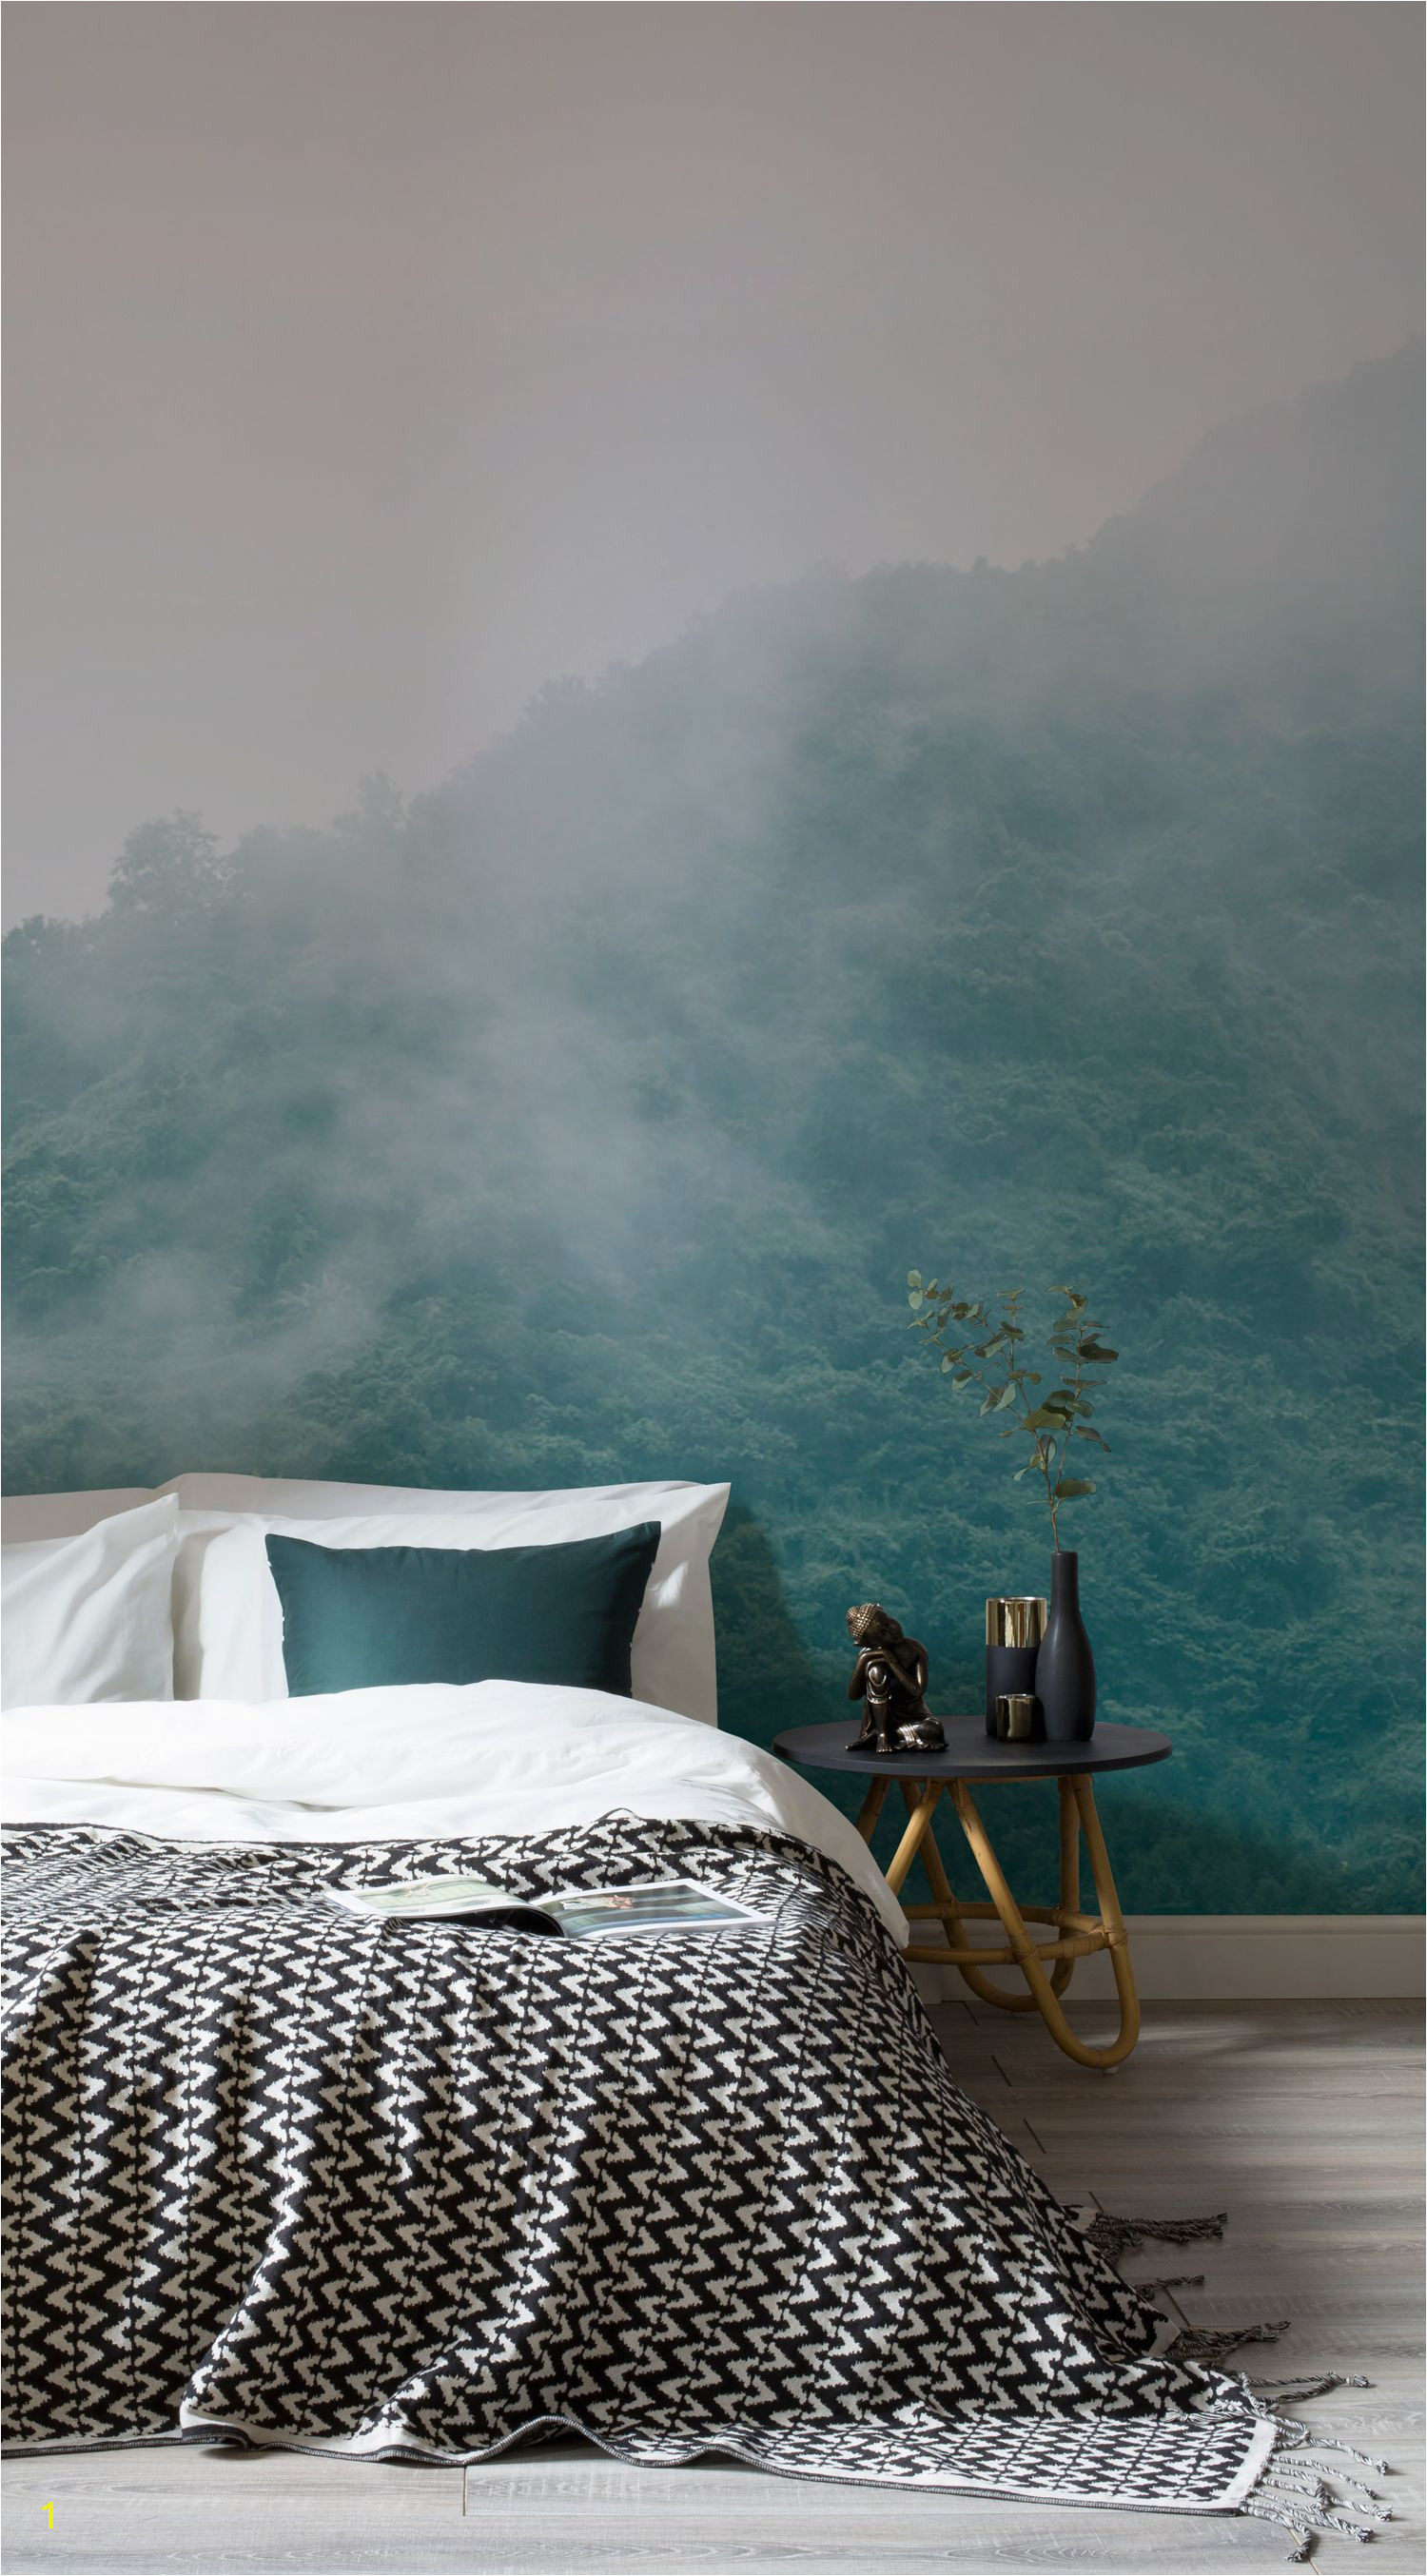 Take a look at these calming wall murals that will help create a stress free zone in your home